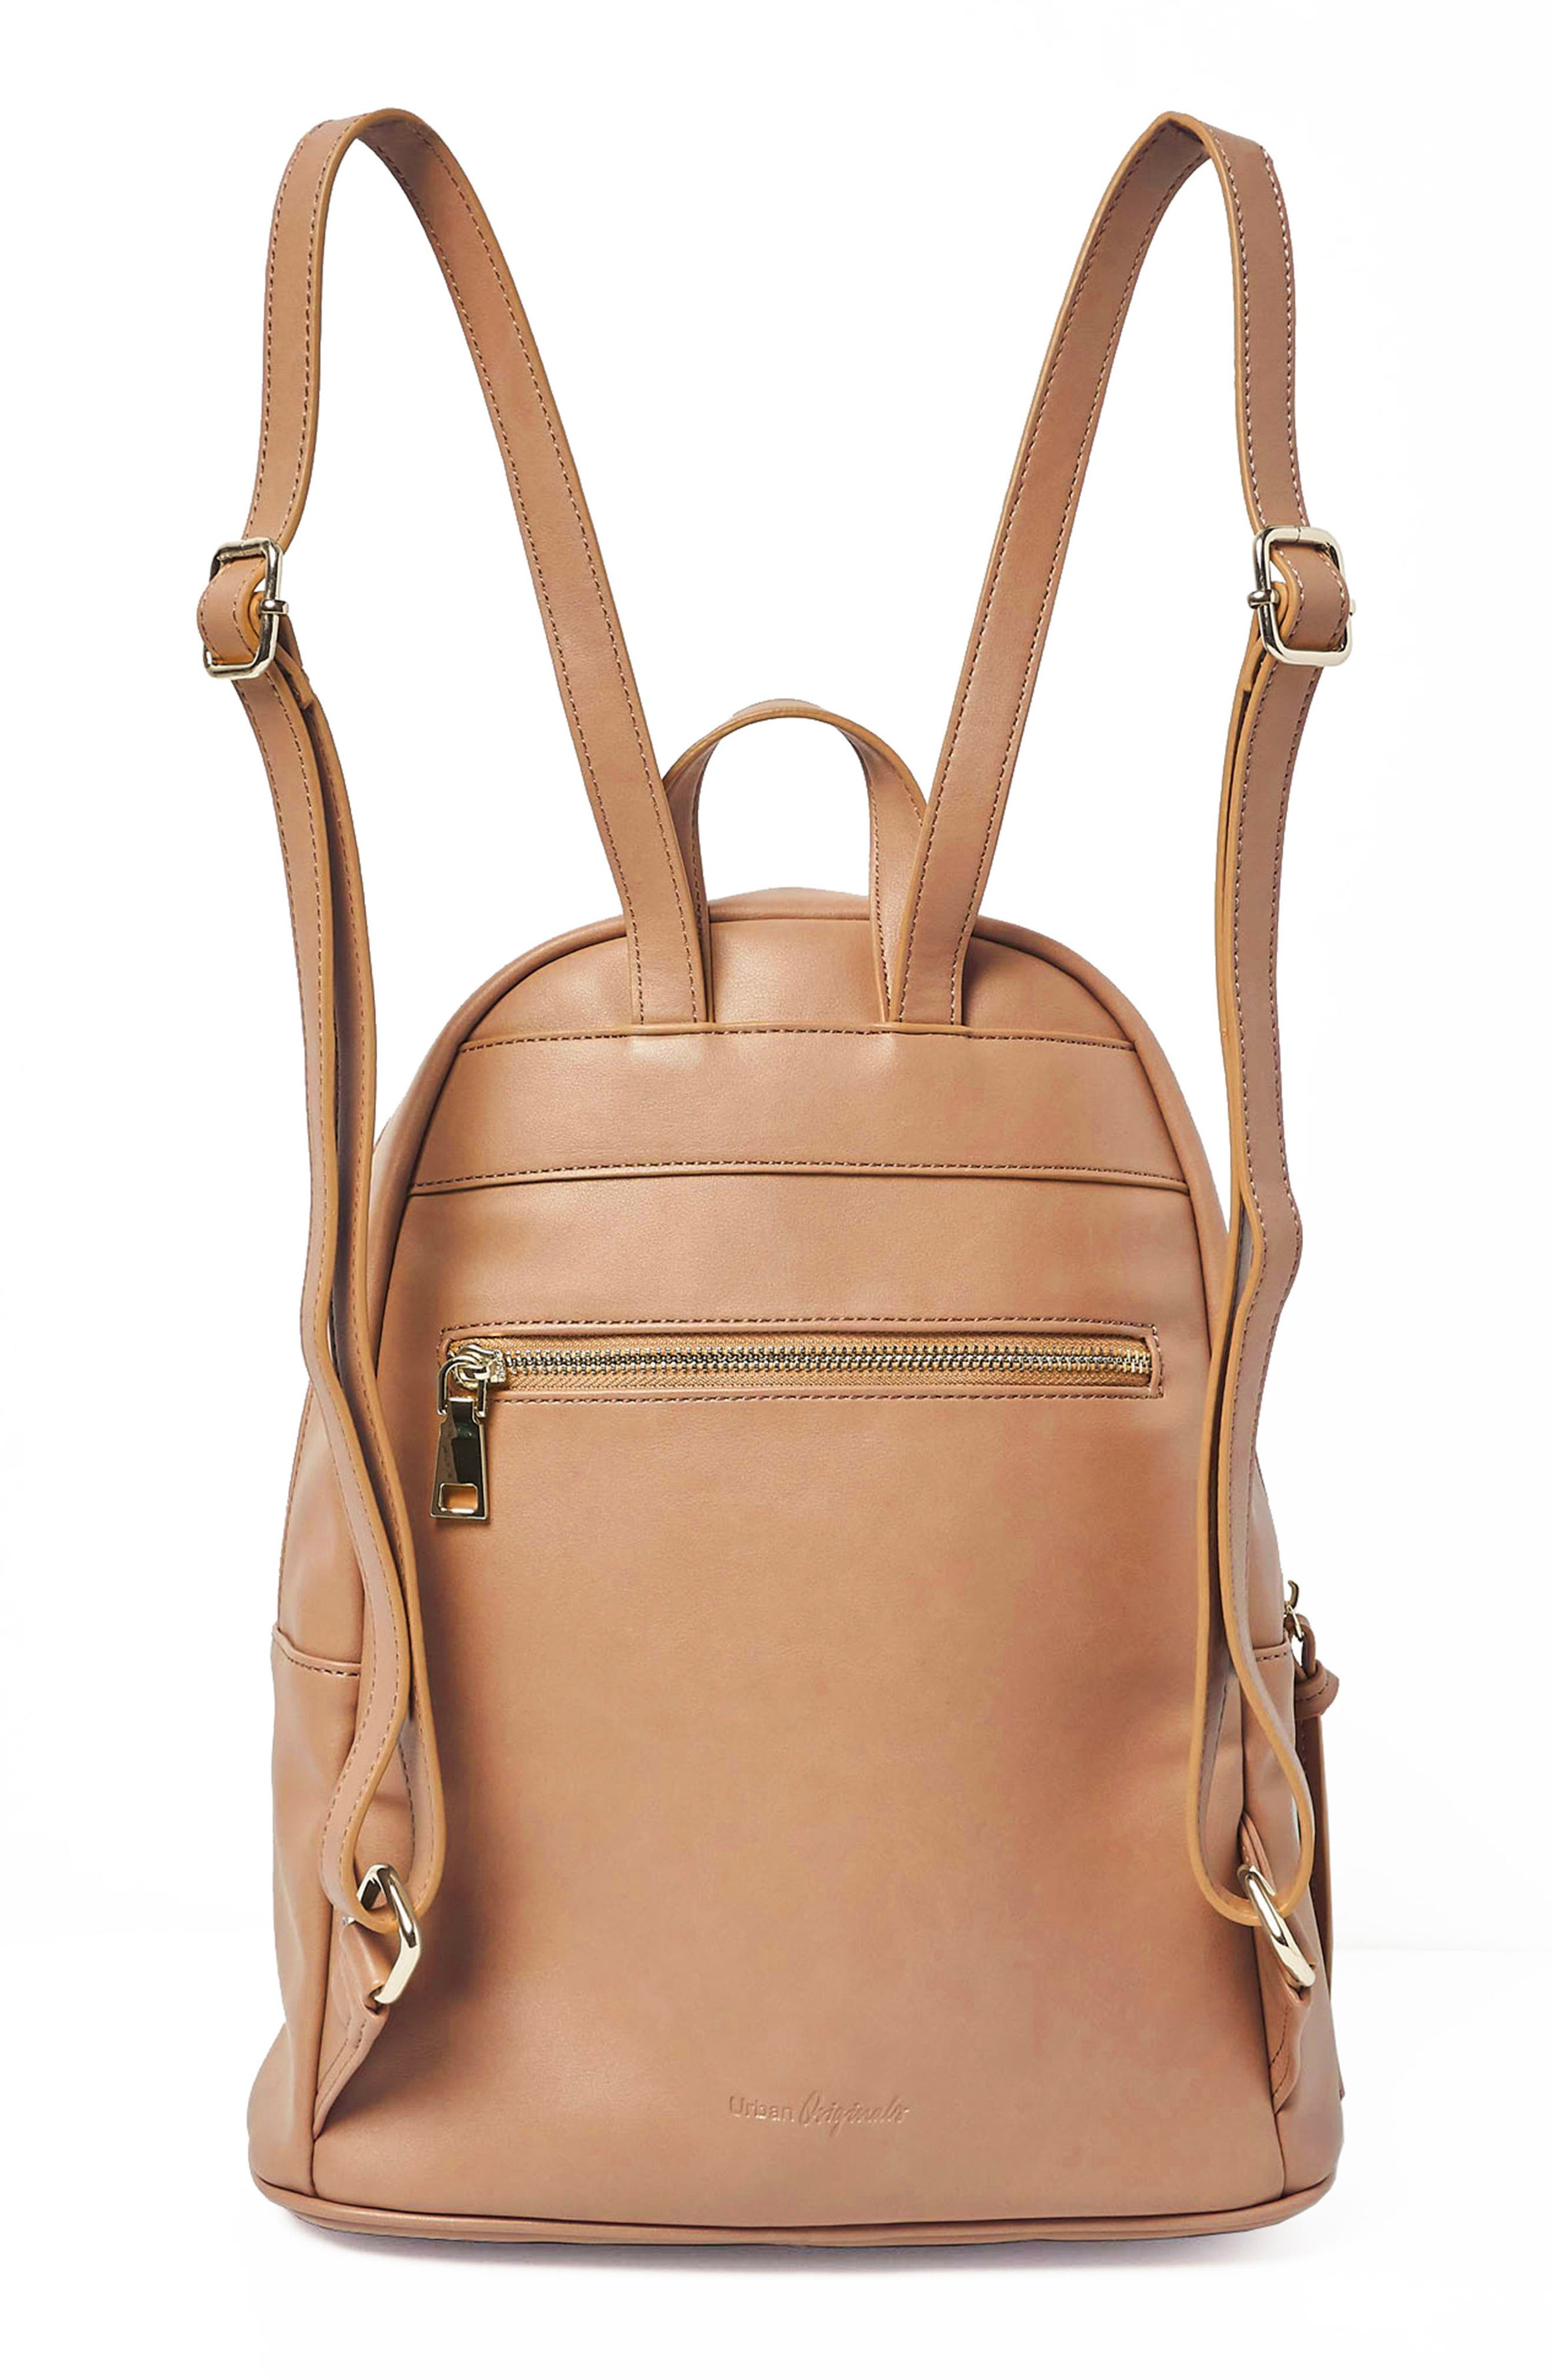 Sublime Vegan Leather Backpack,                             Alternate thumbnail 2, color,                             Nude